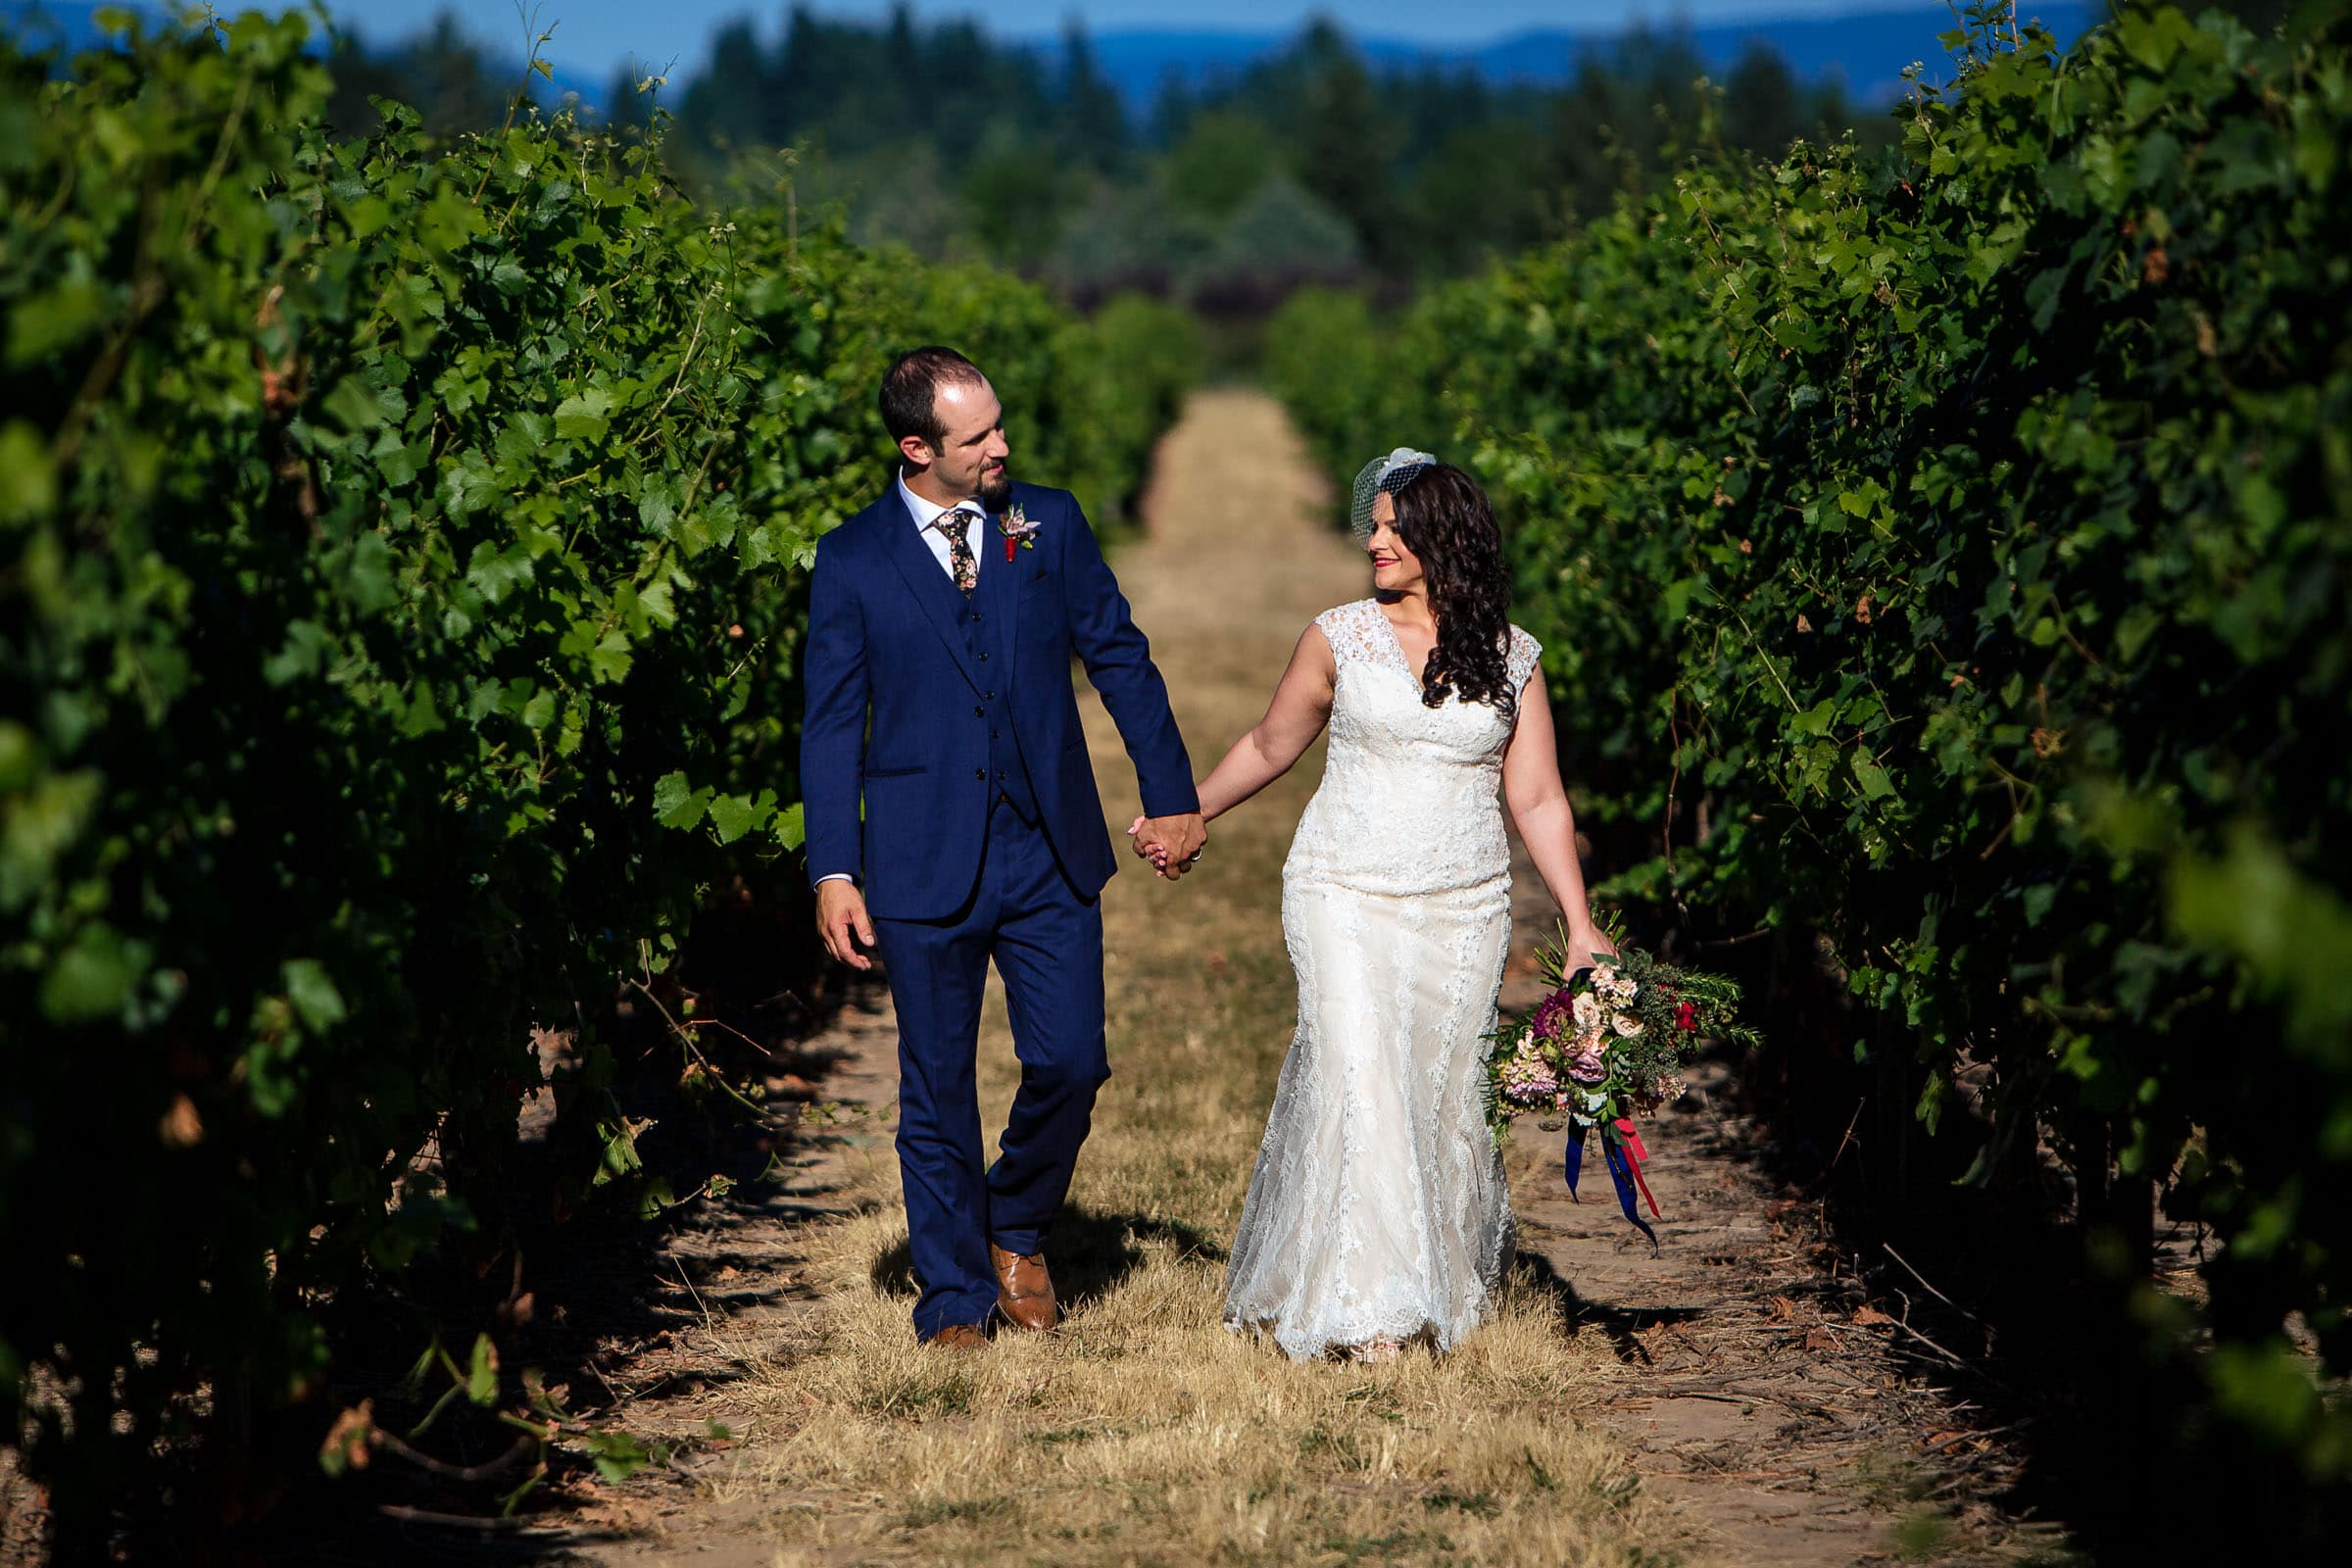 A beautiful bride and groom walking together in a vineyard during their Postlewait's Country wedding located in the heart of the Willamette Valley between Portland and Salem near Aurora, Oregon